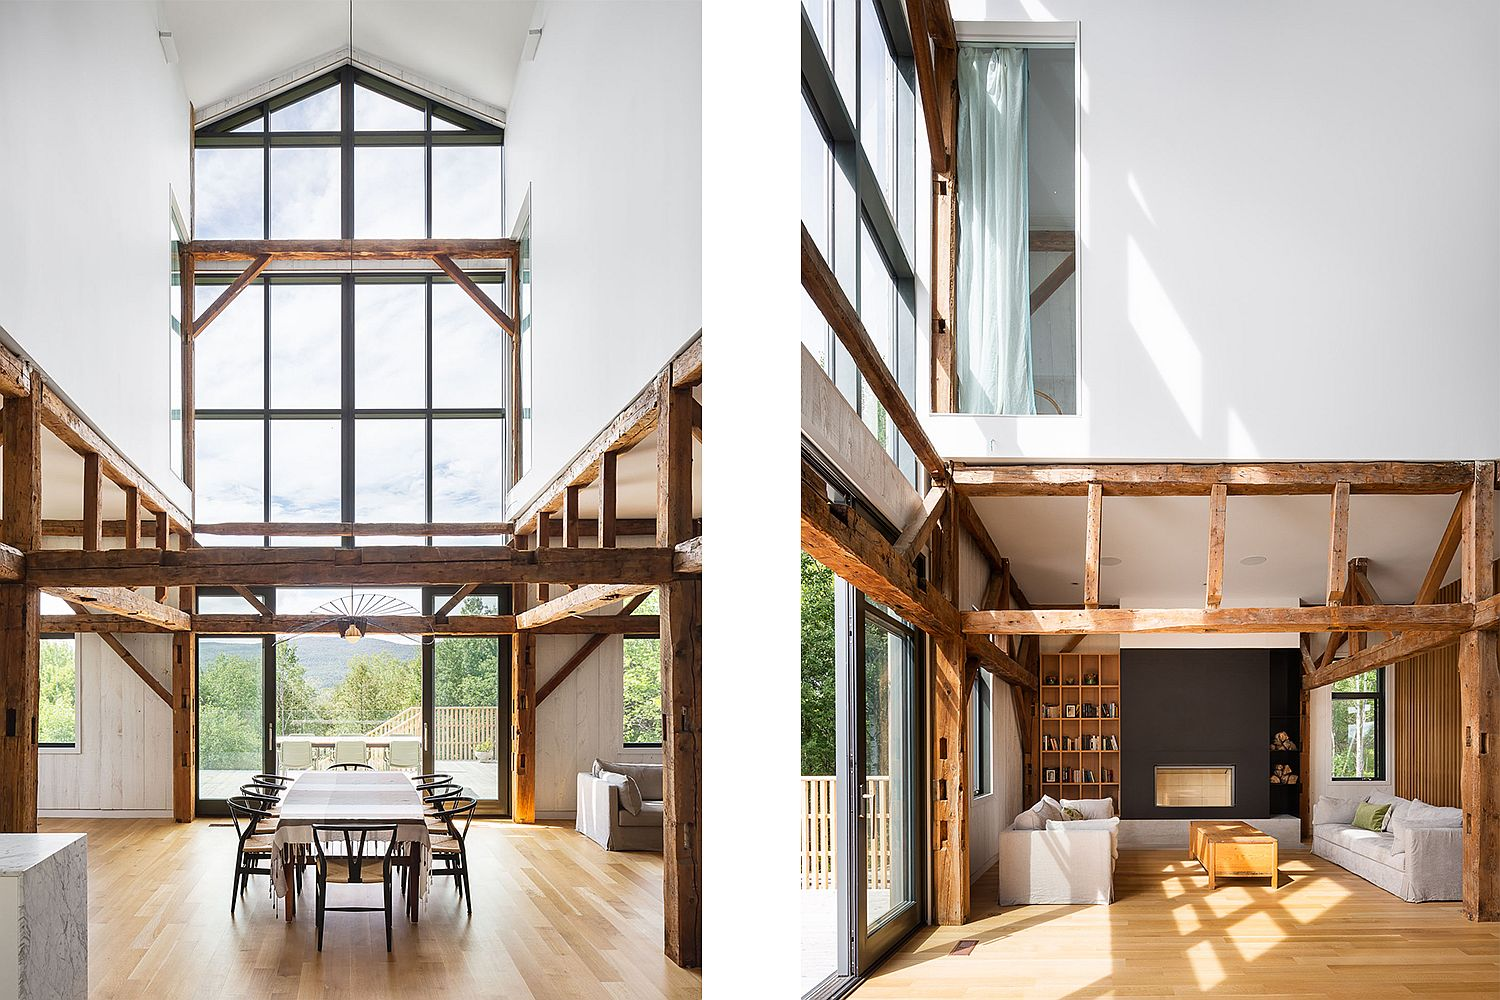 30-foot high ceilinsg of the house make a big impact in the dining room and kitchen